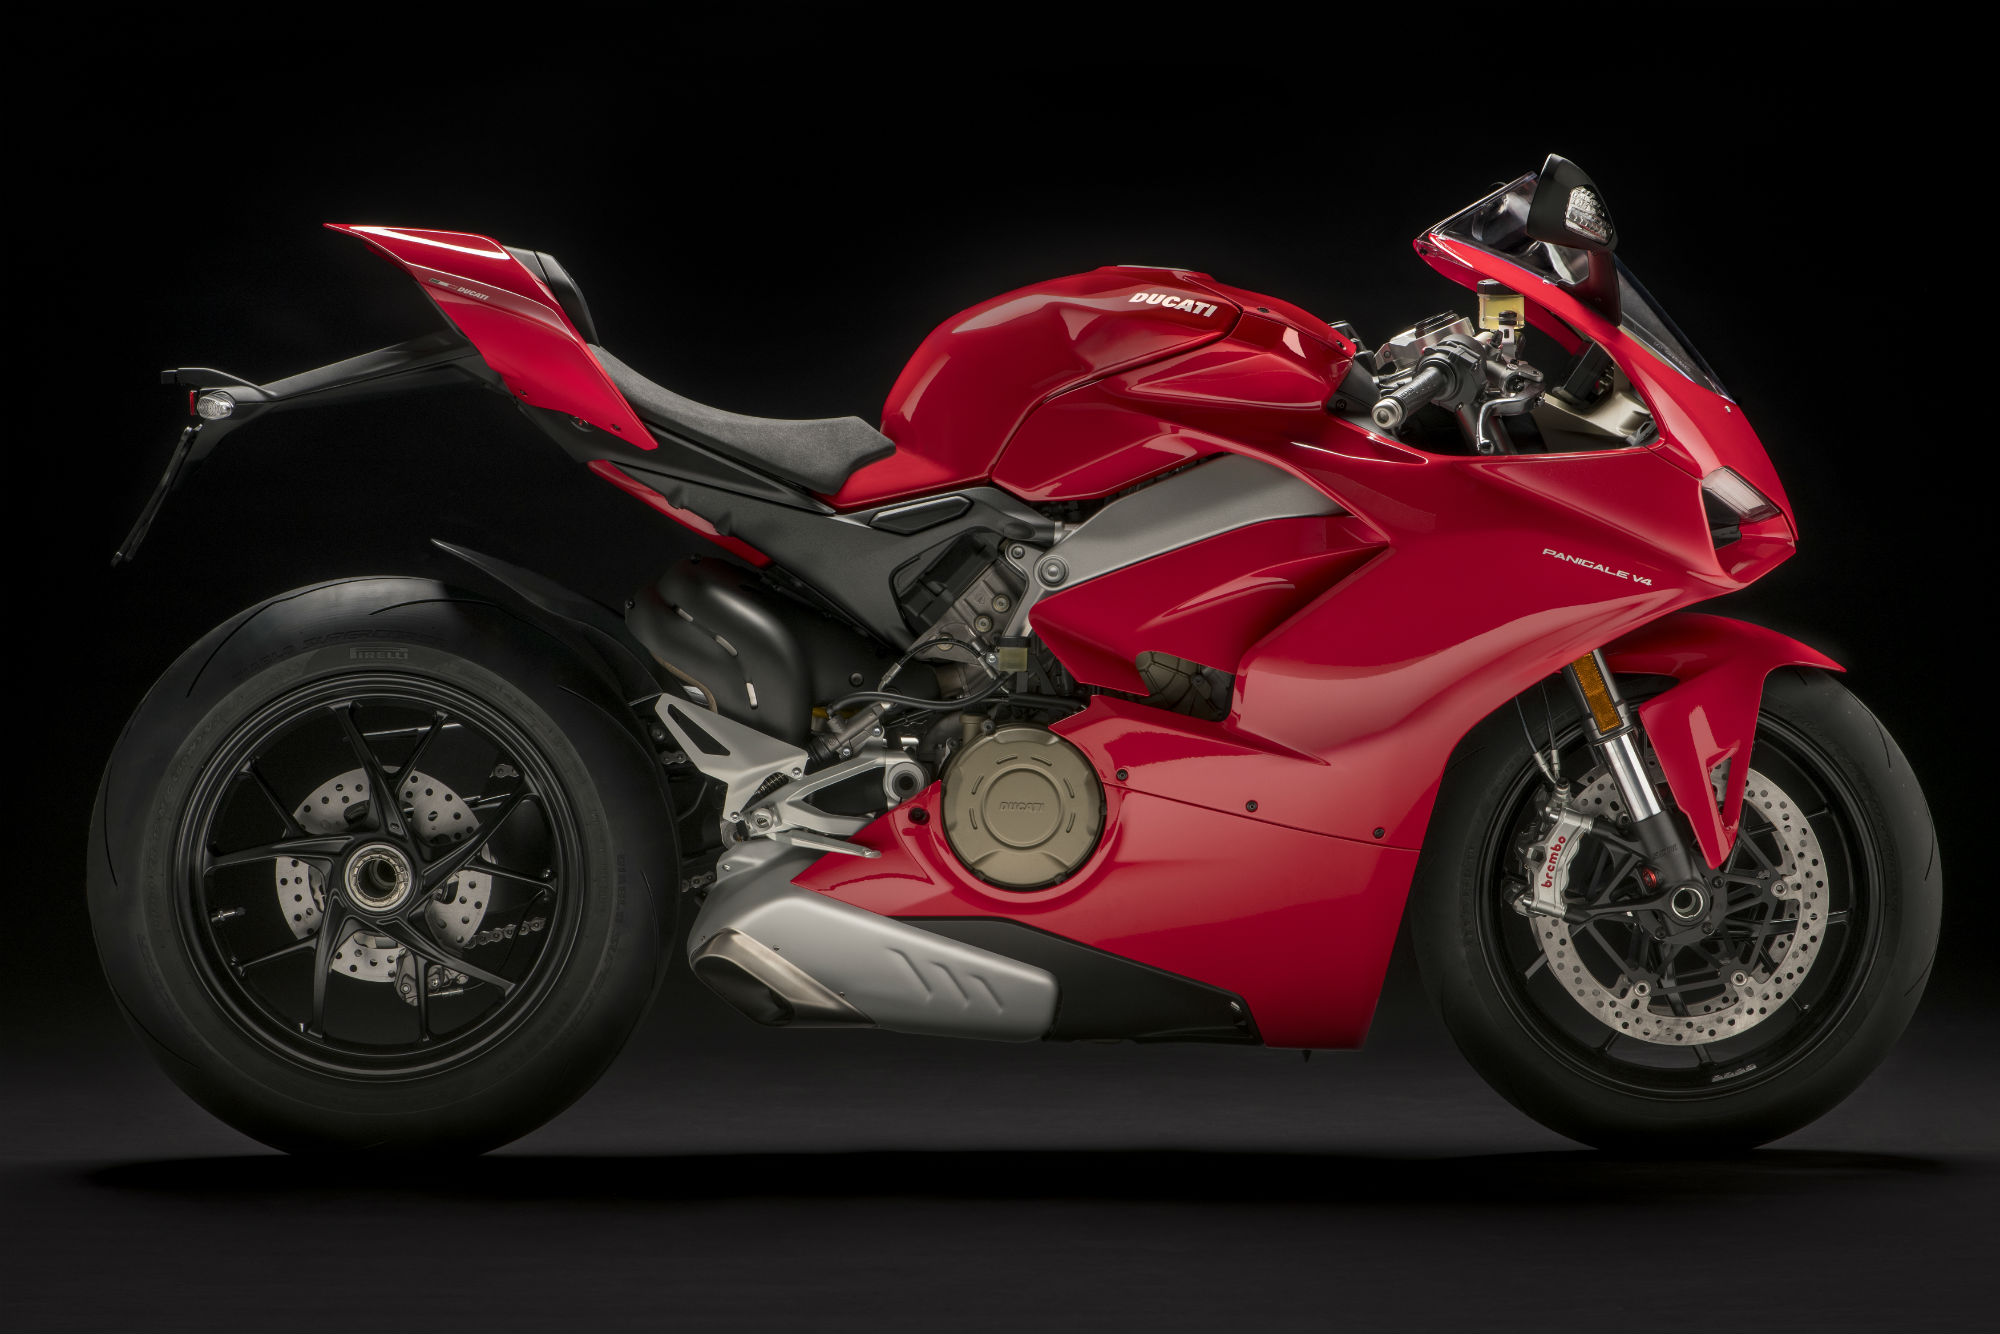 Ducati Panigale V4 production begins